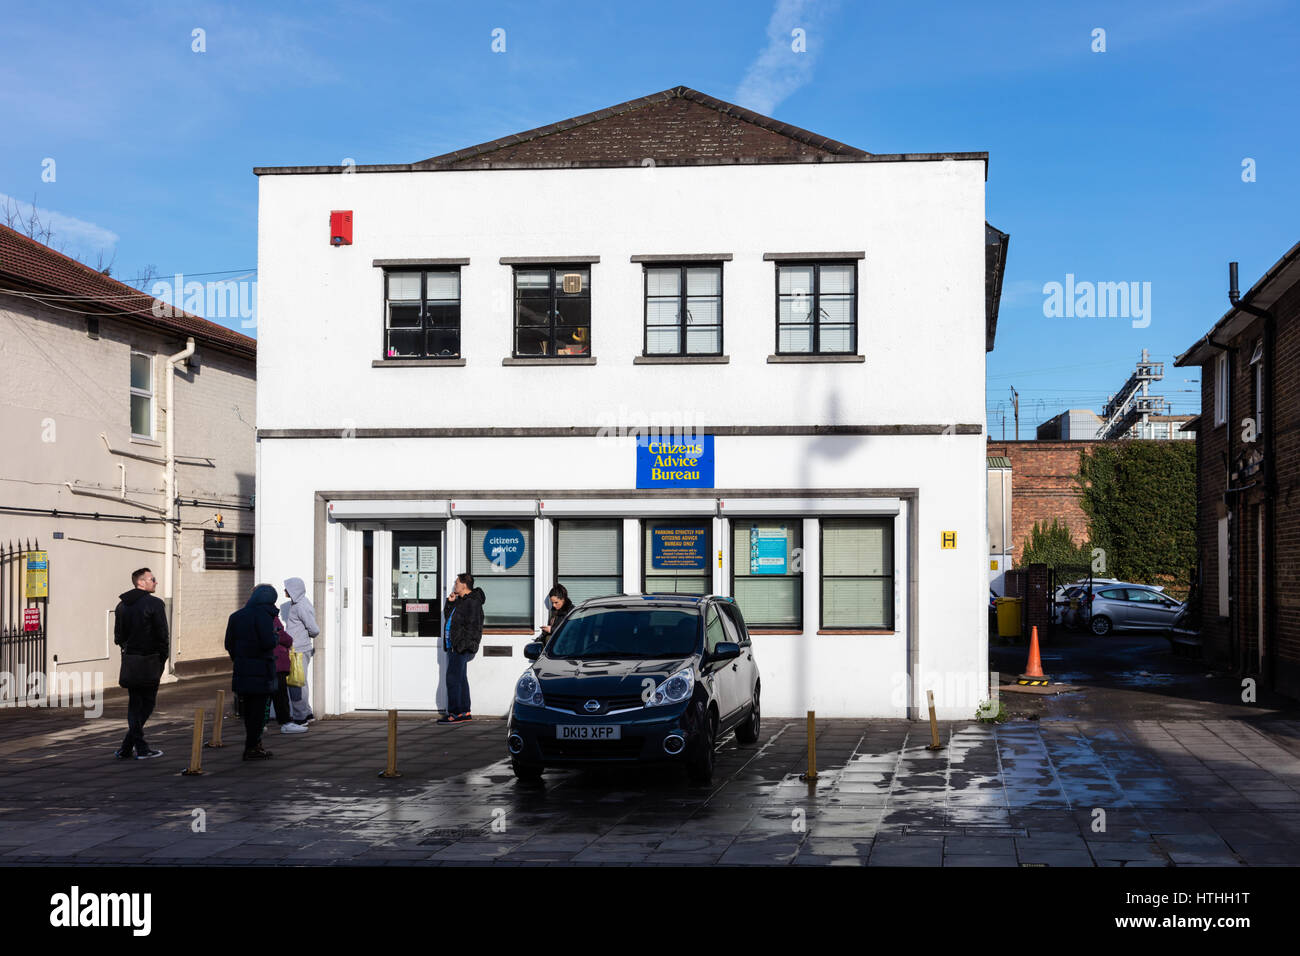 People wait outside a Citizens Advice Bureau in the early morning for it to open, Romford town Center, London, UK - Stock Image